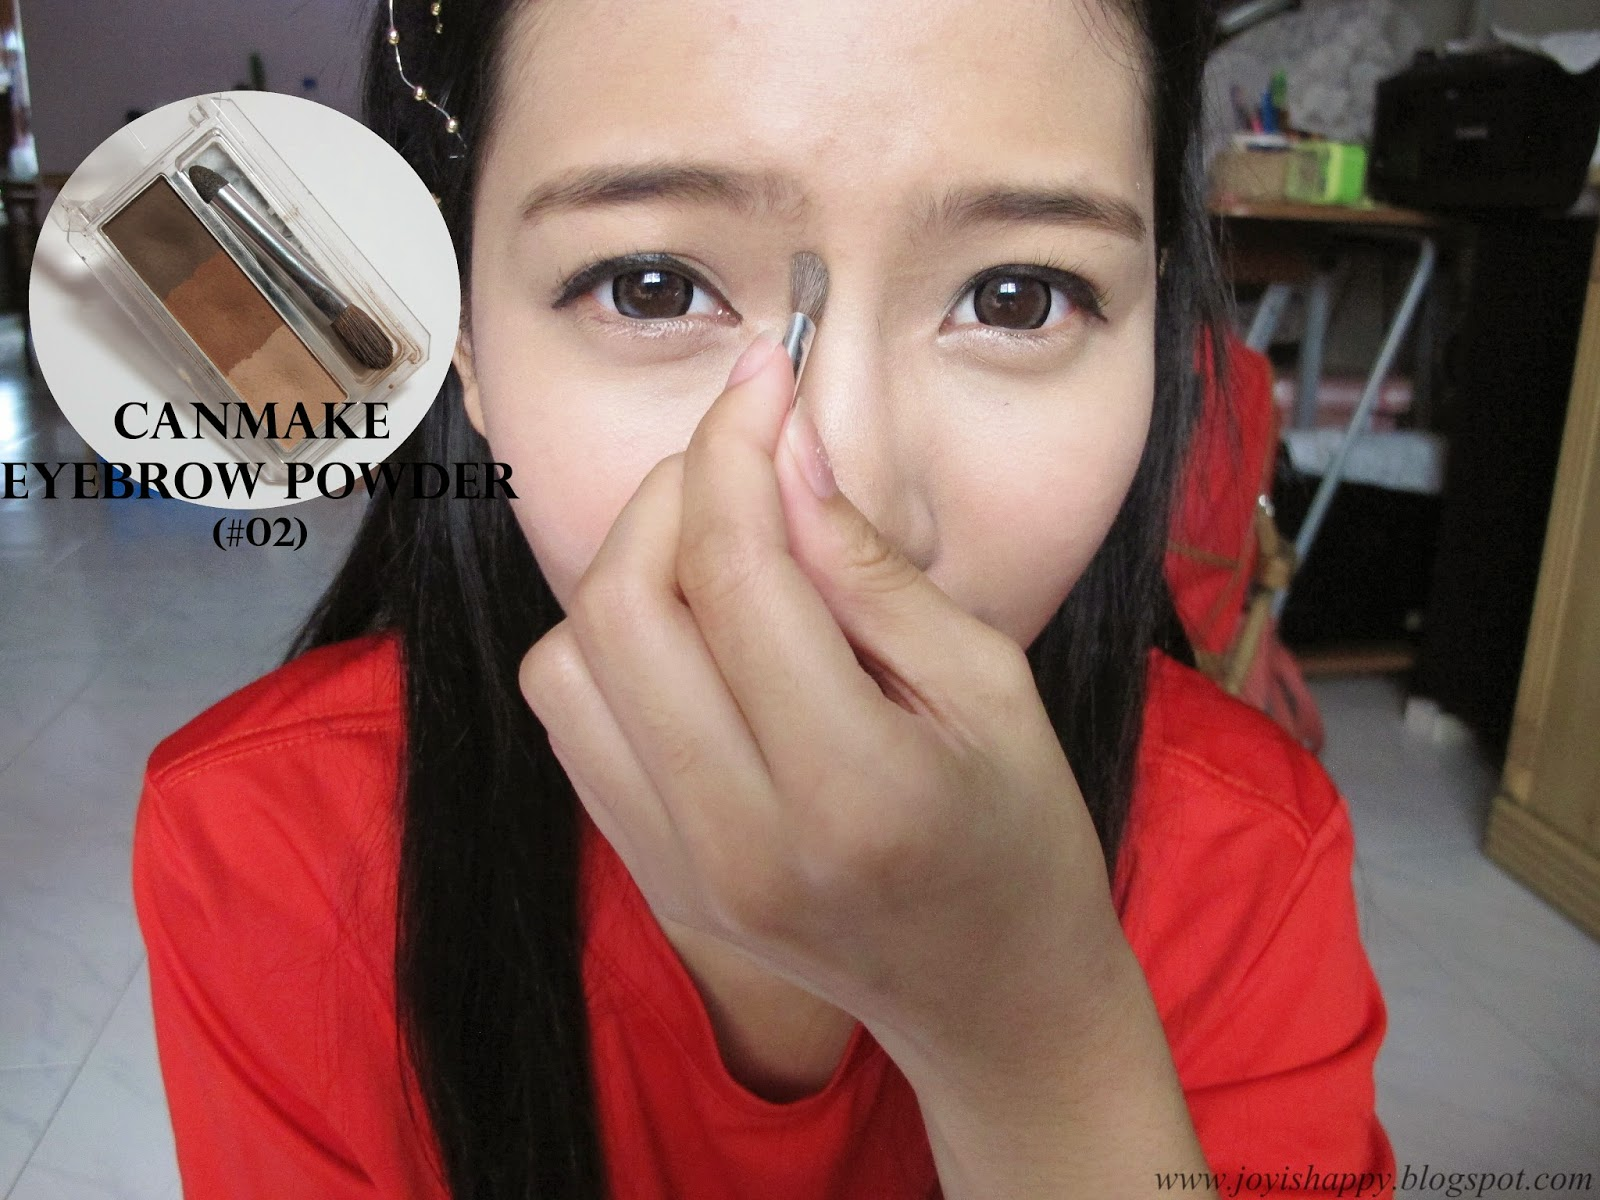 canmake eyebrow powder #02